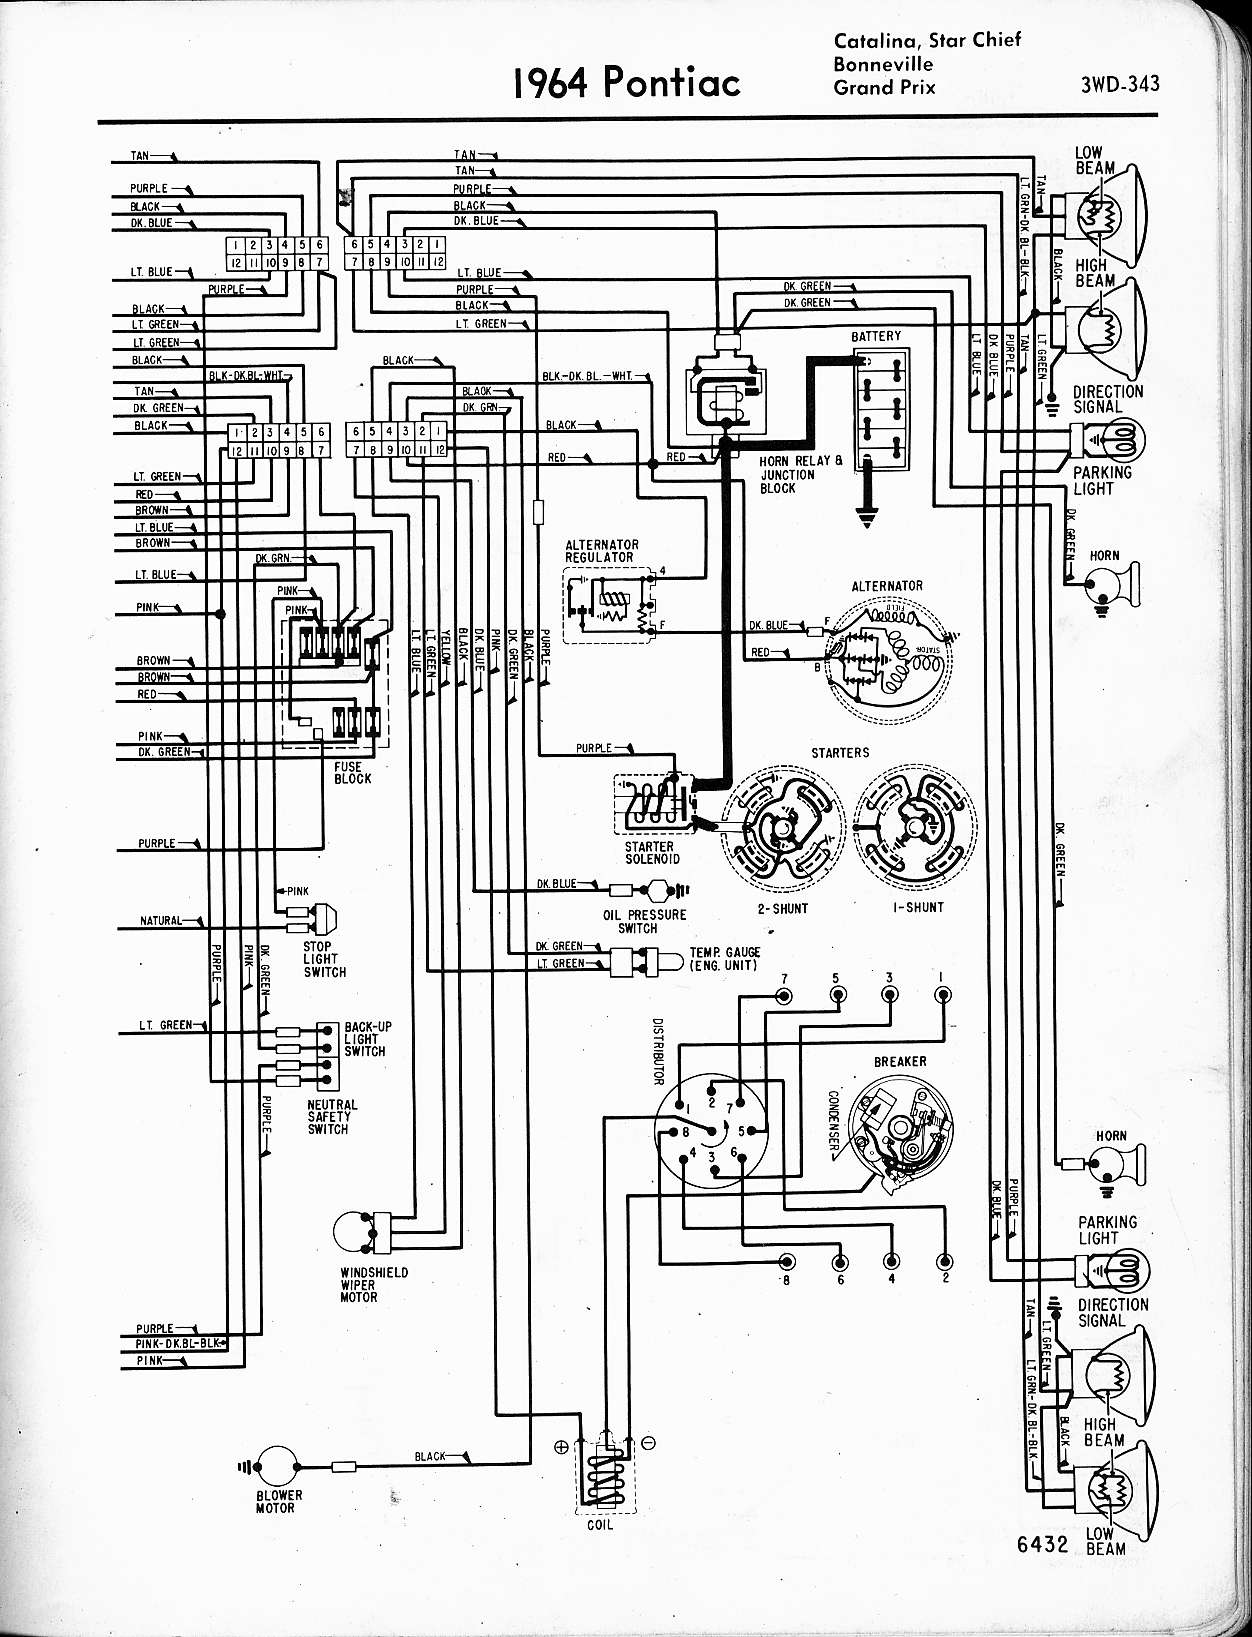 Wallace Racing Wiring Diagrams 1964 5 Mustang Diagram Dash Catalina Star Chief Bonneville Grand Prix Right Page